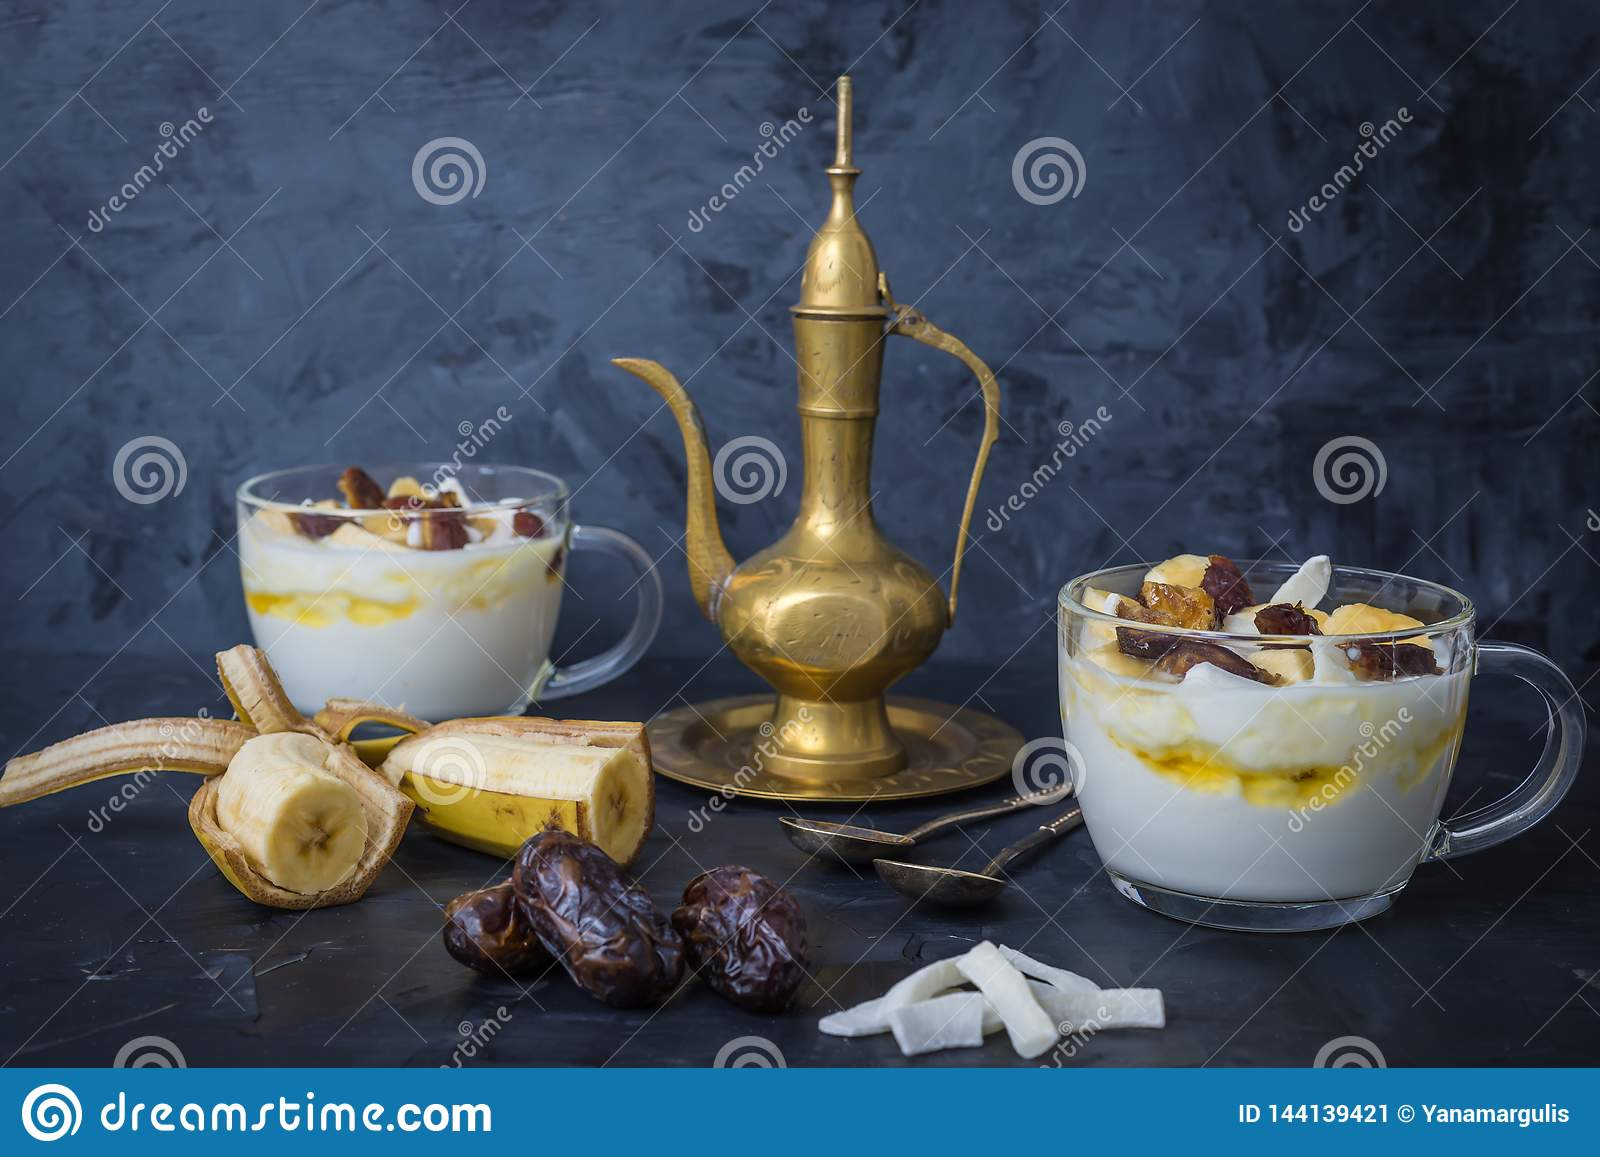 Iftar or Suhoor snack close up of dates with yogurt